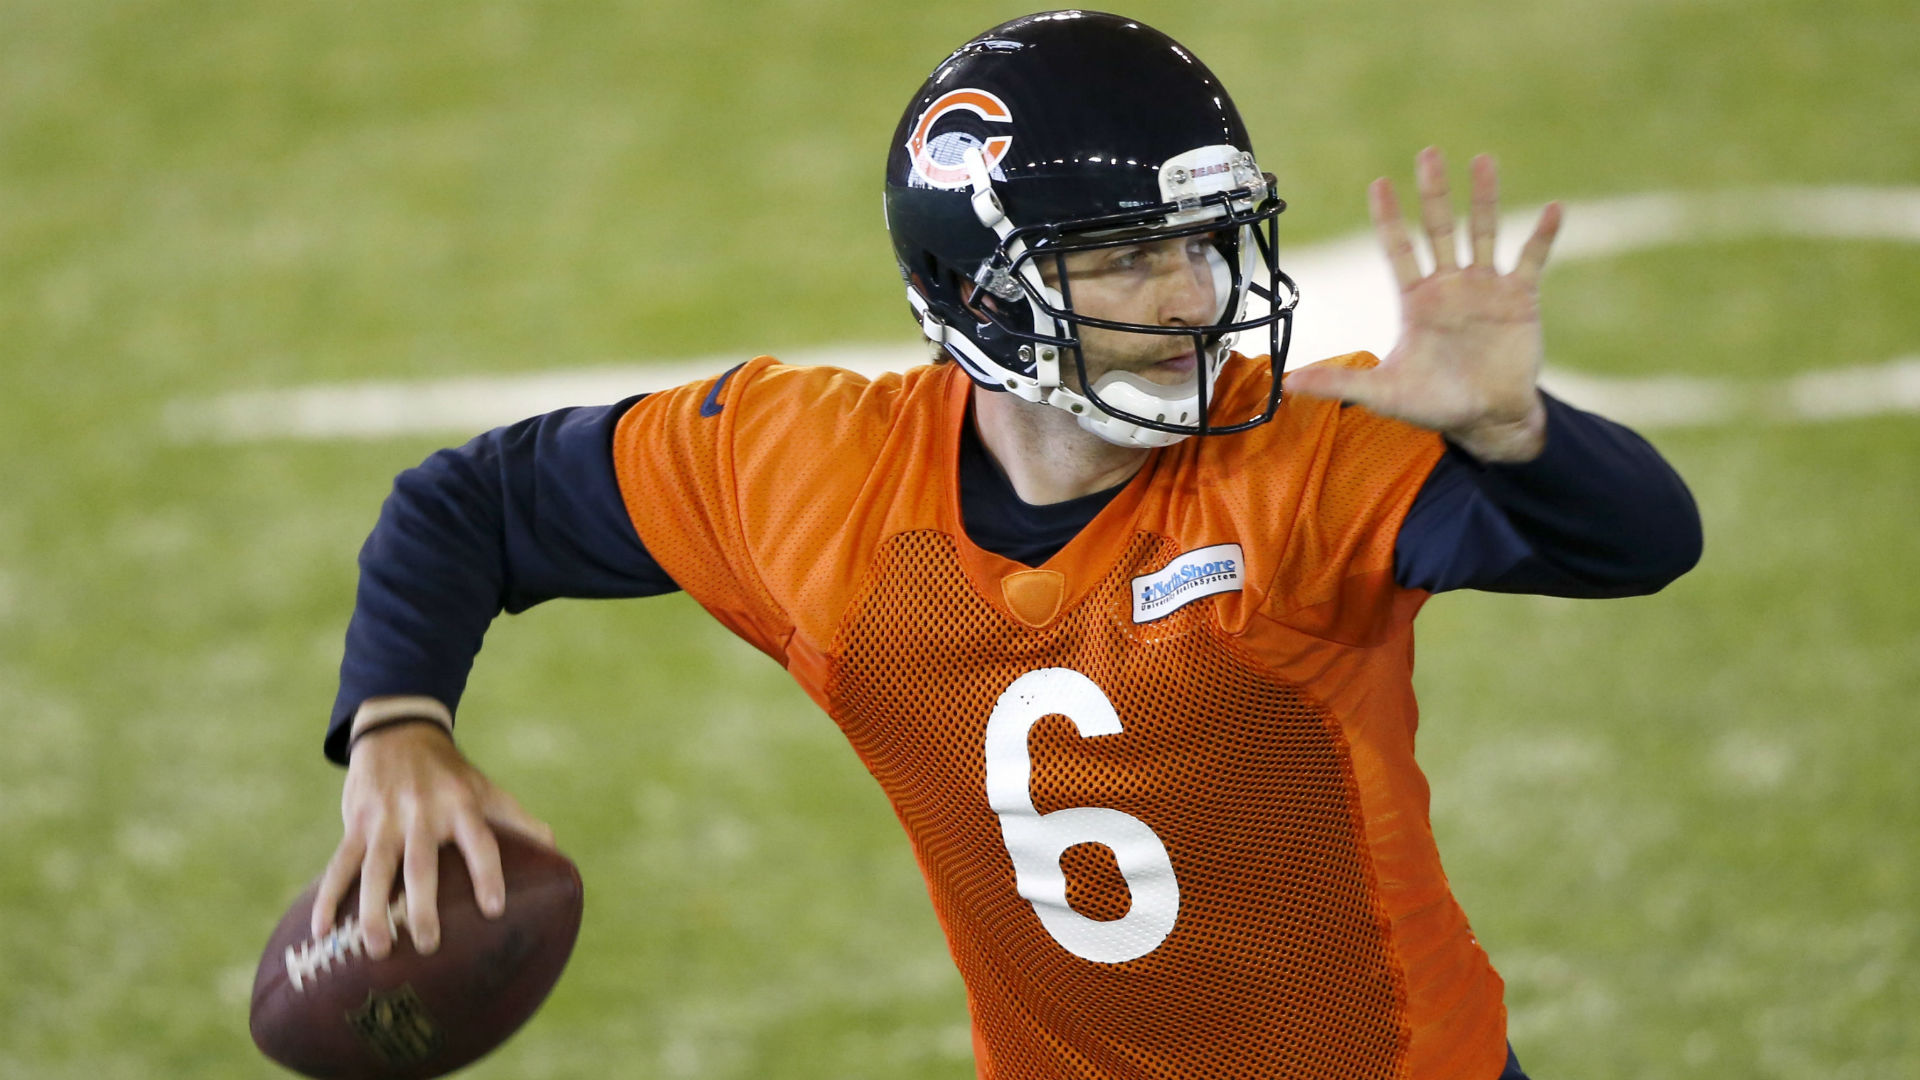 Fantasy football sleepers: Are the Bears too good for a sleeper?